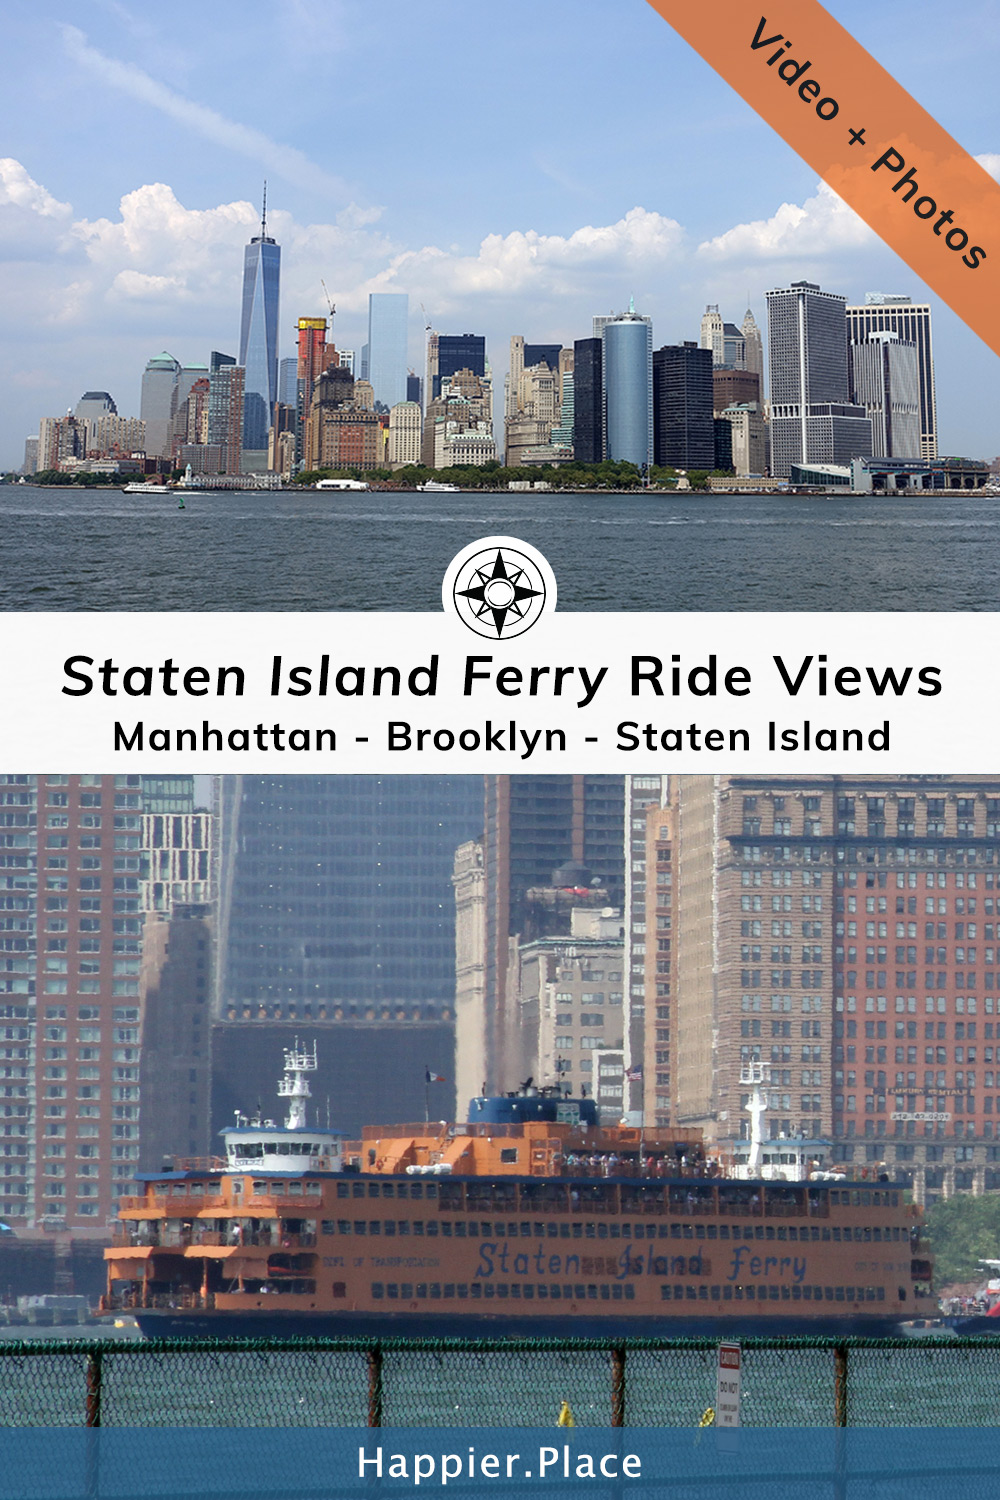 Staten Island Ferry Views from Manhattan, along Brooklyn and the Statue of Liberty to Staten Island and back. Video and photos from this moving Happier Place! #NYC #NewYork #HappierPlace